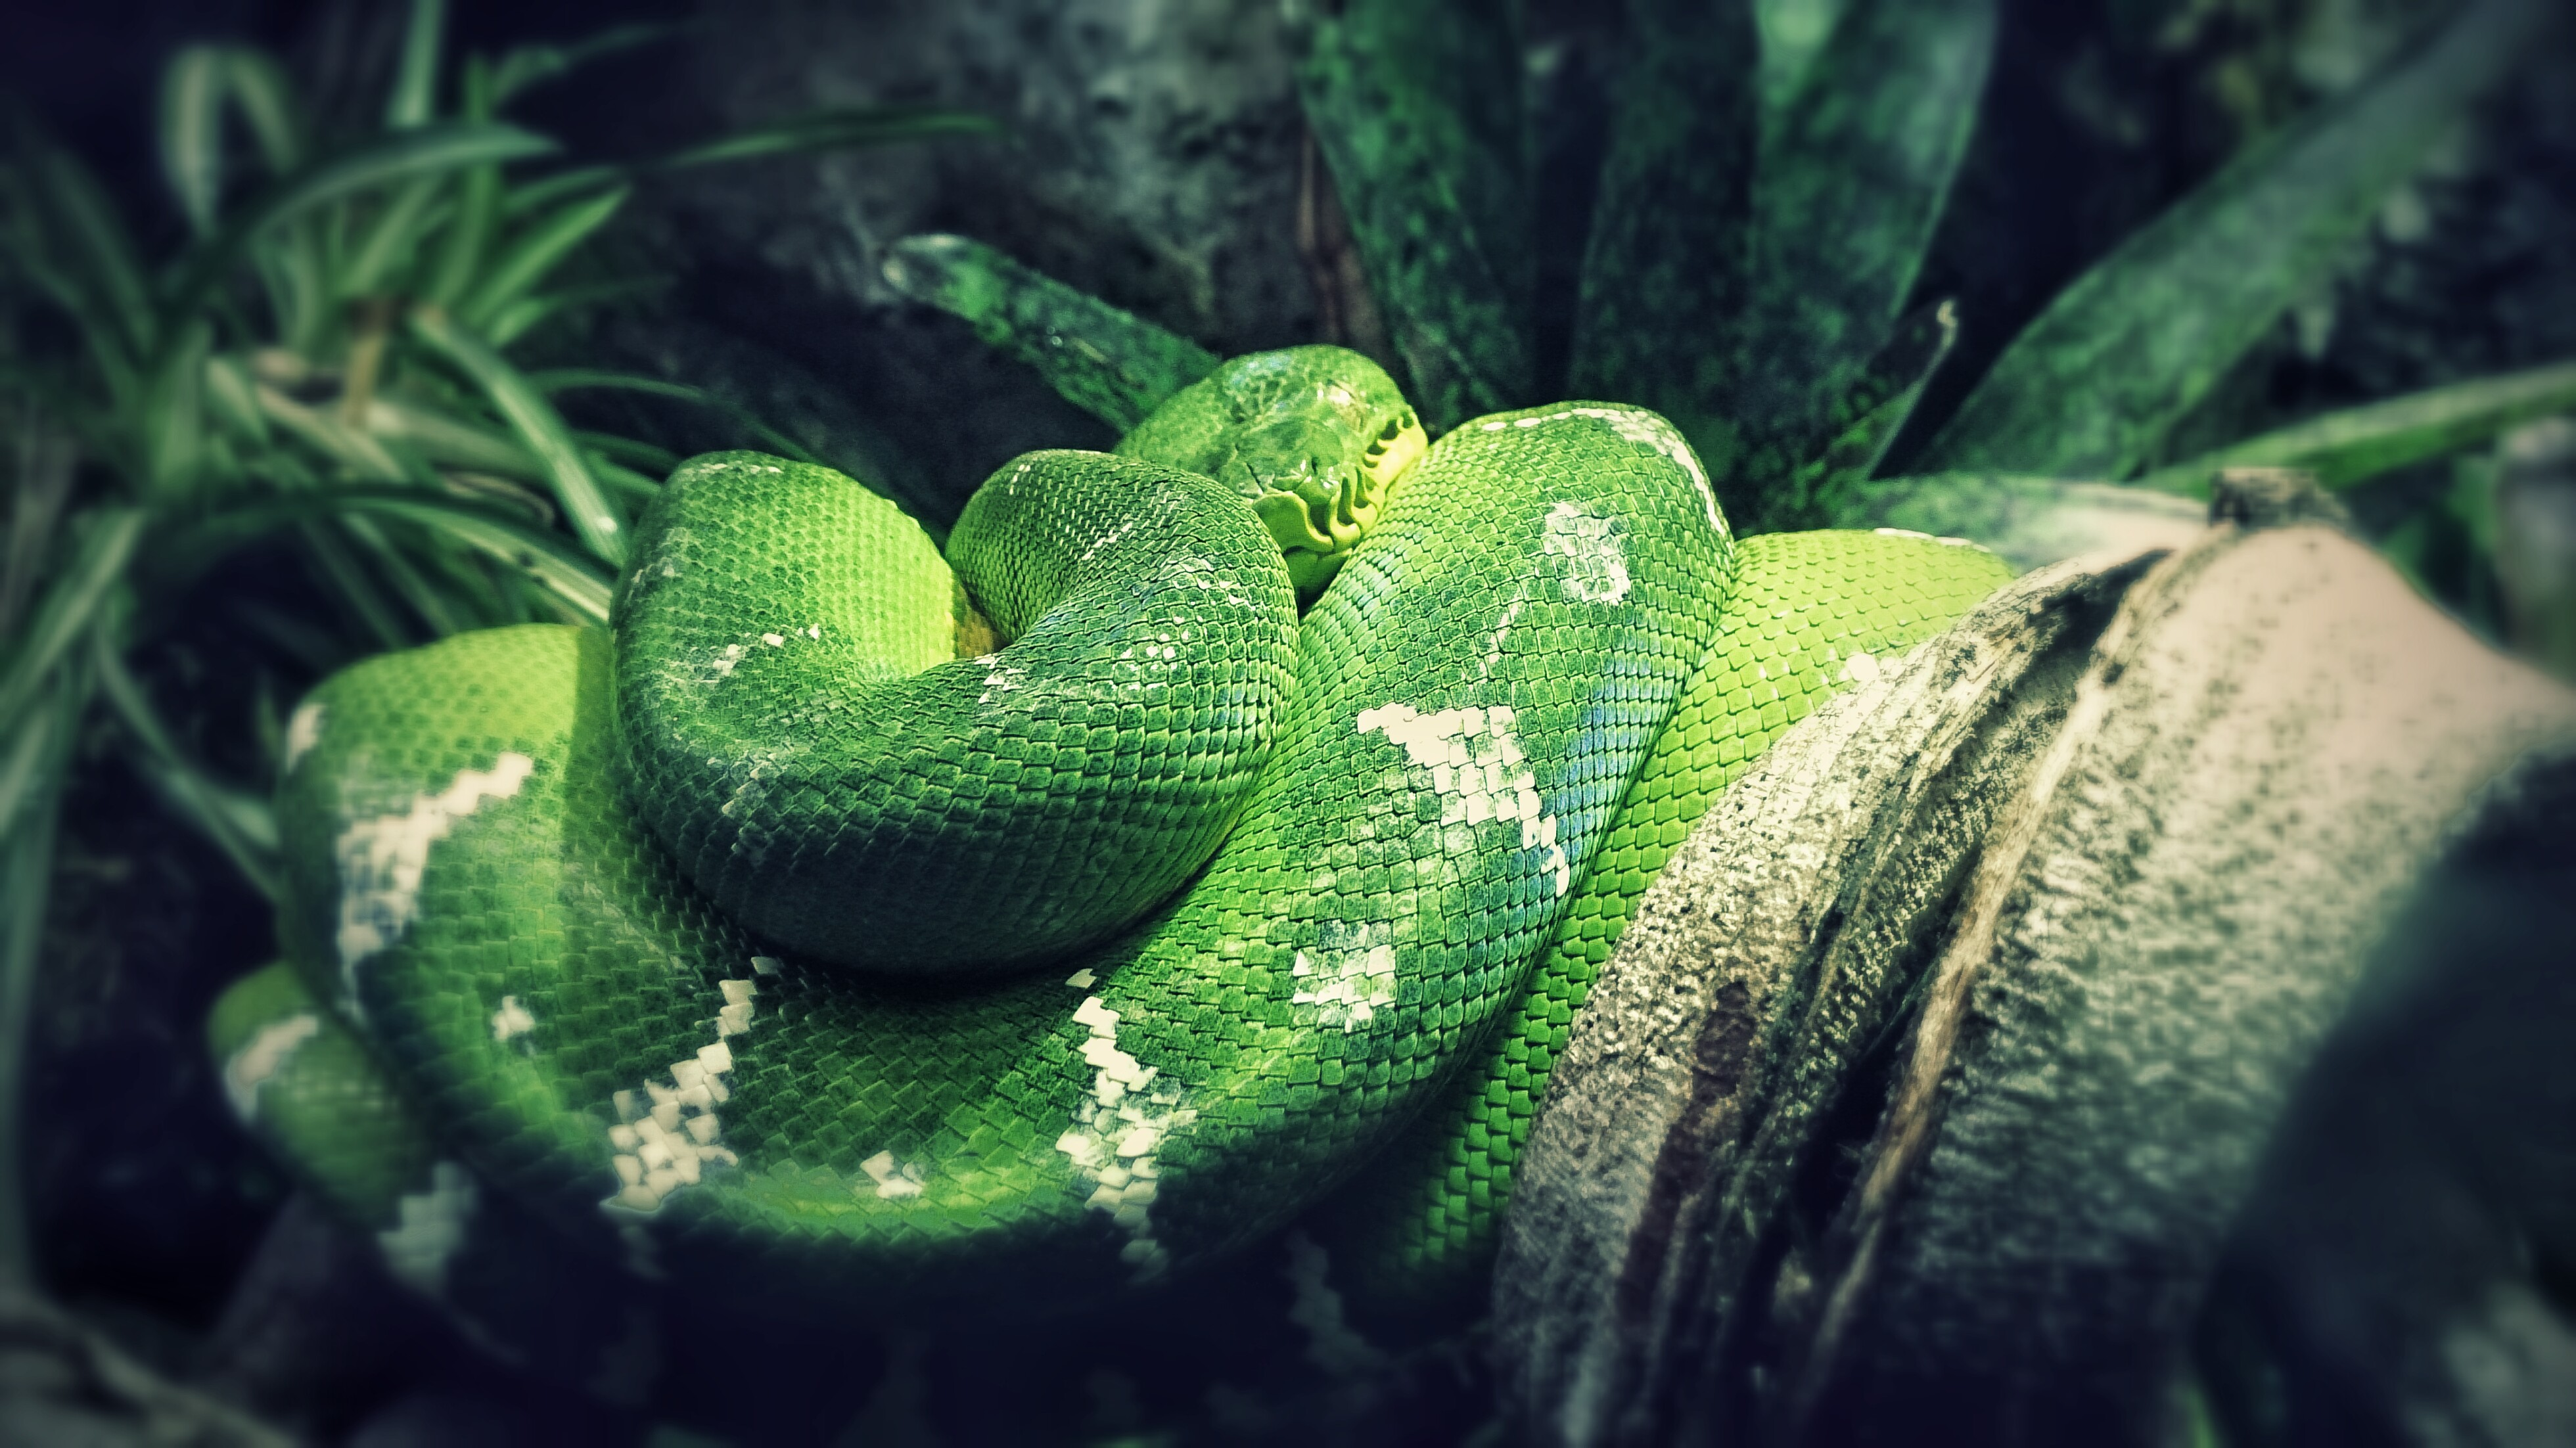 Photography #1 | Green Snake. by pyxArtz